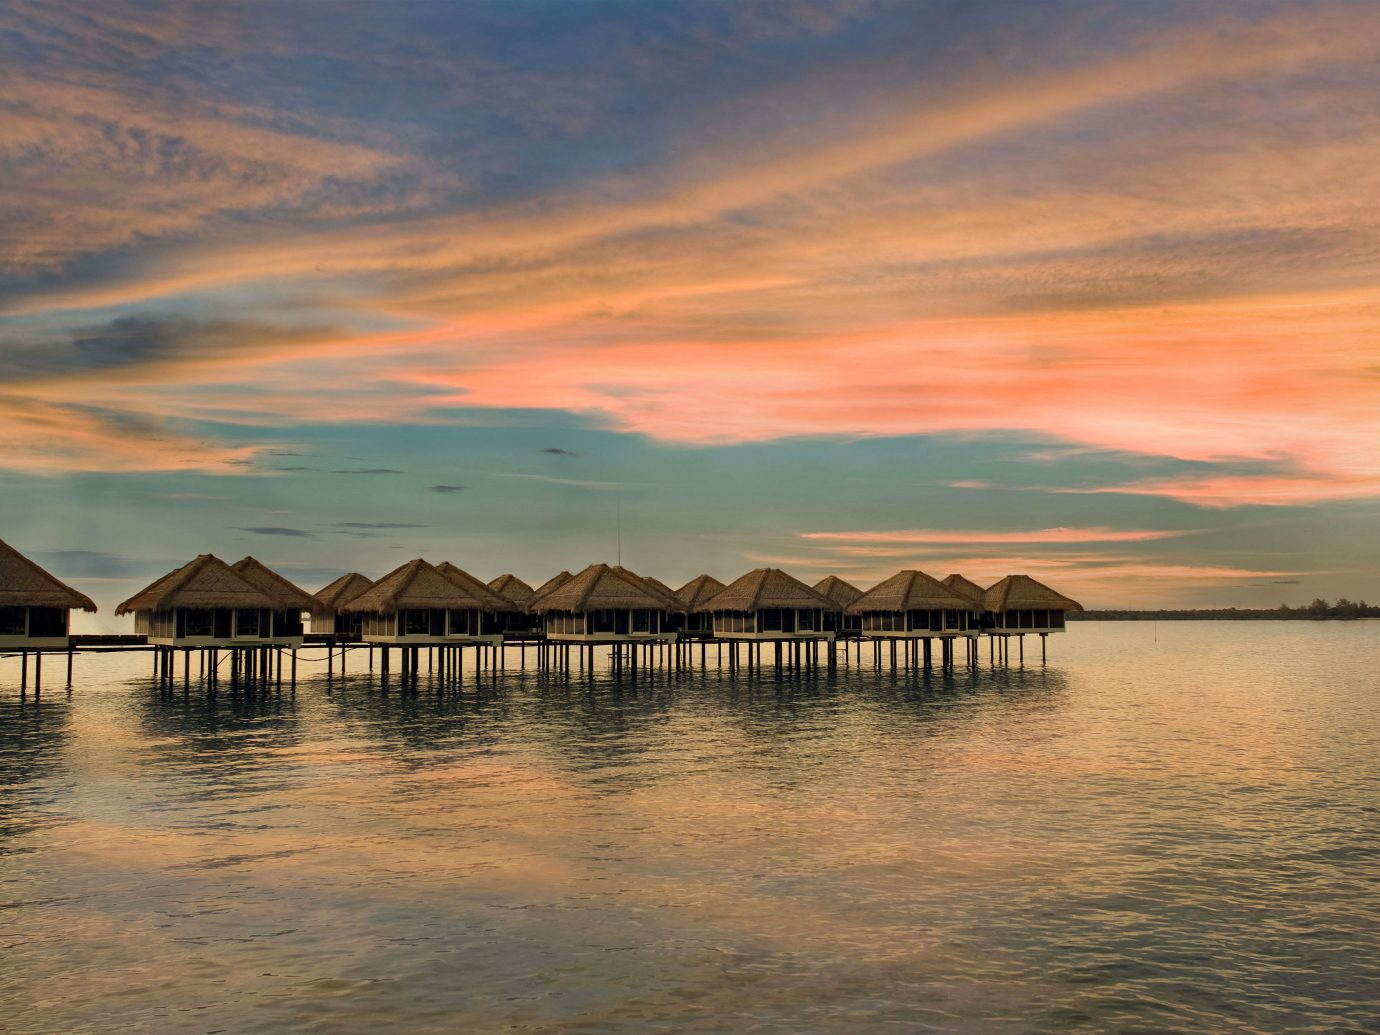 Island Luxury Overwater Bungalow Romance Romantic Sunset Trip Ideas Waterfront water sky outdoor scene pier shore sunrise cloud Sea reflection horizon body of water dawn Ocean dusk evening afterglow morning Coast Beach loch Lake bay wave several